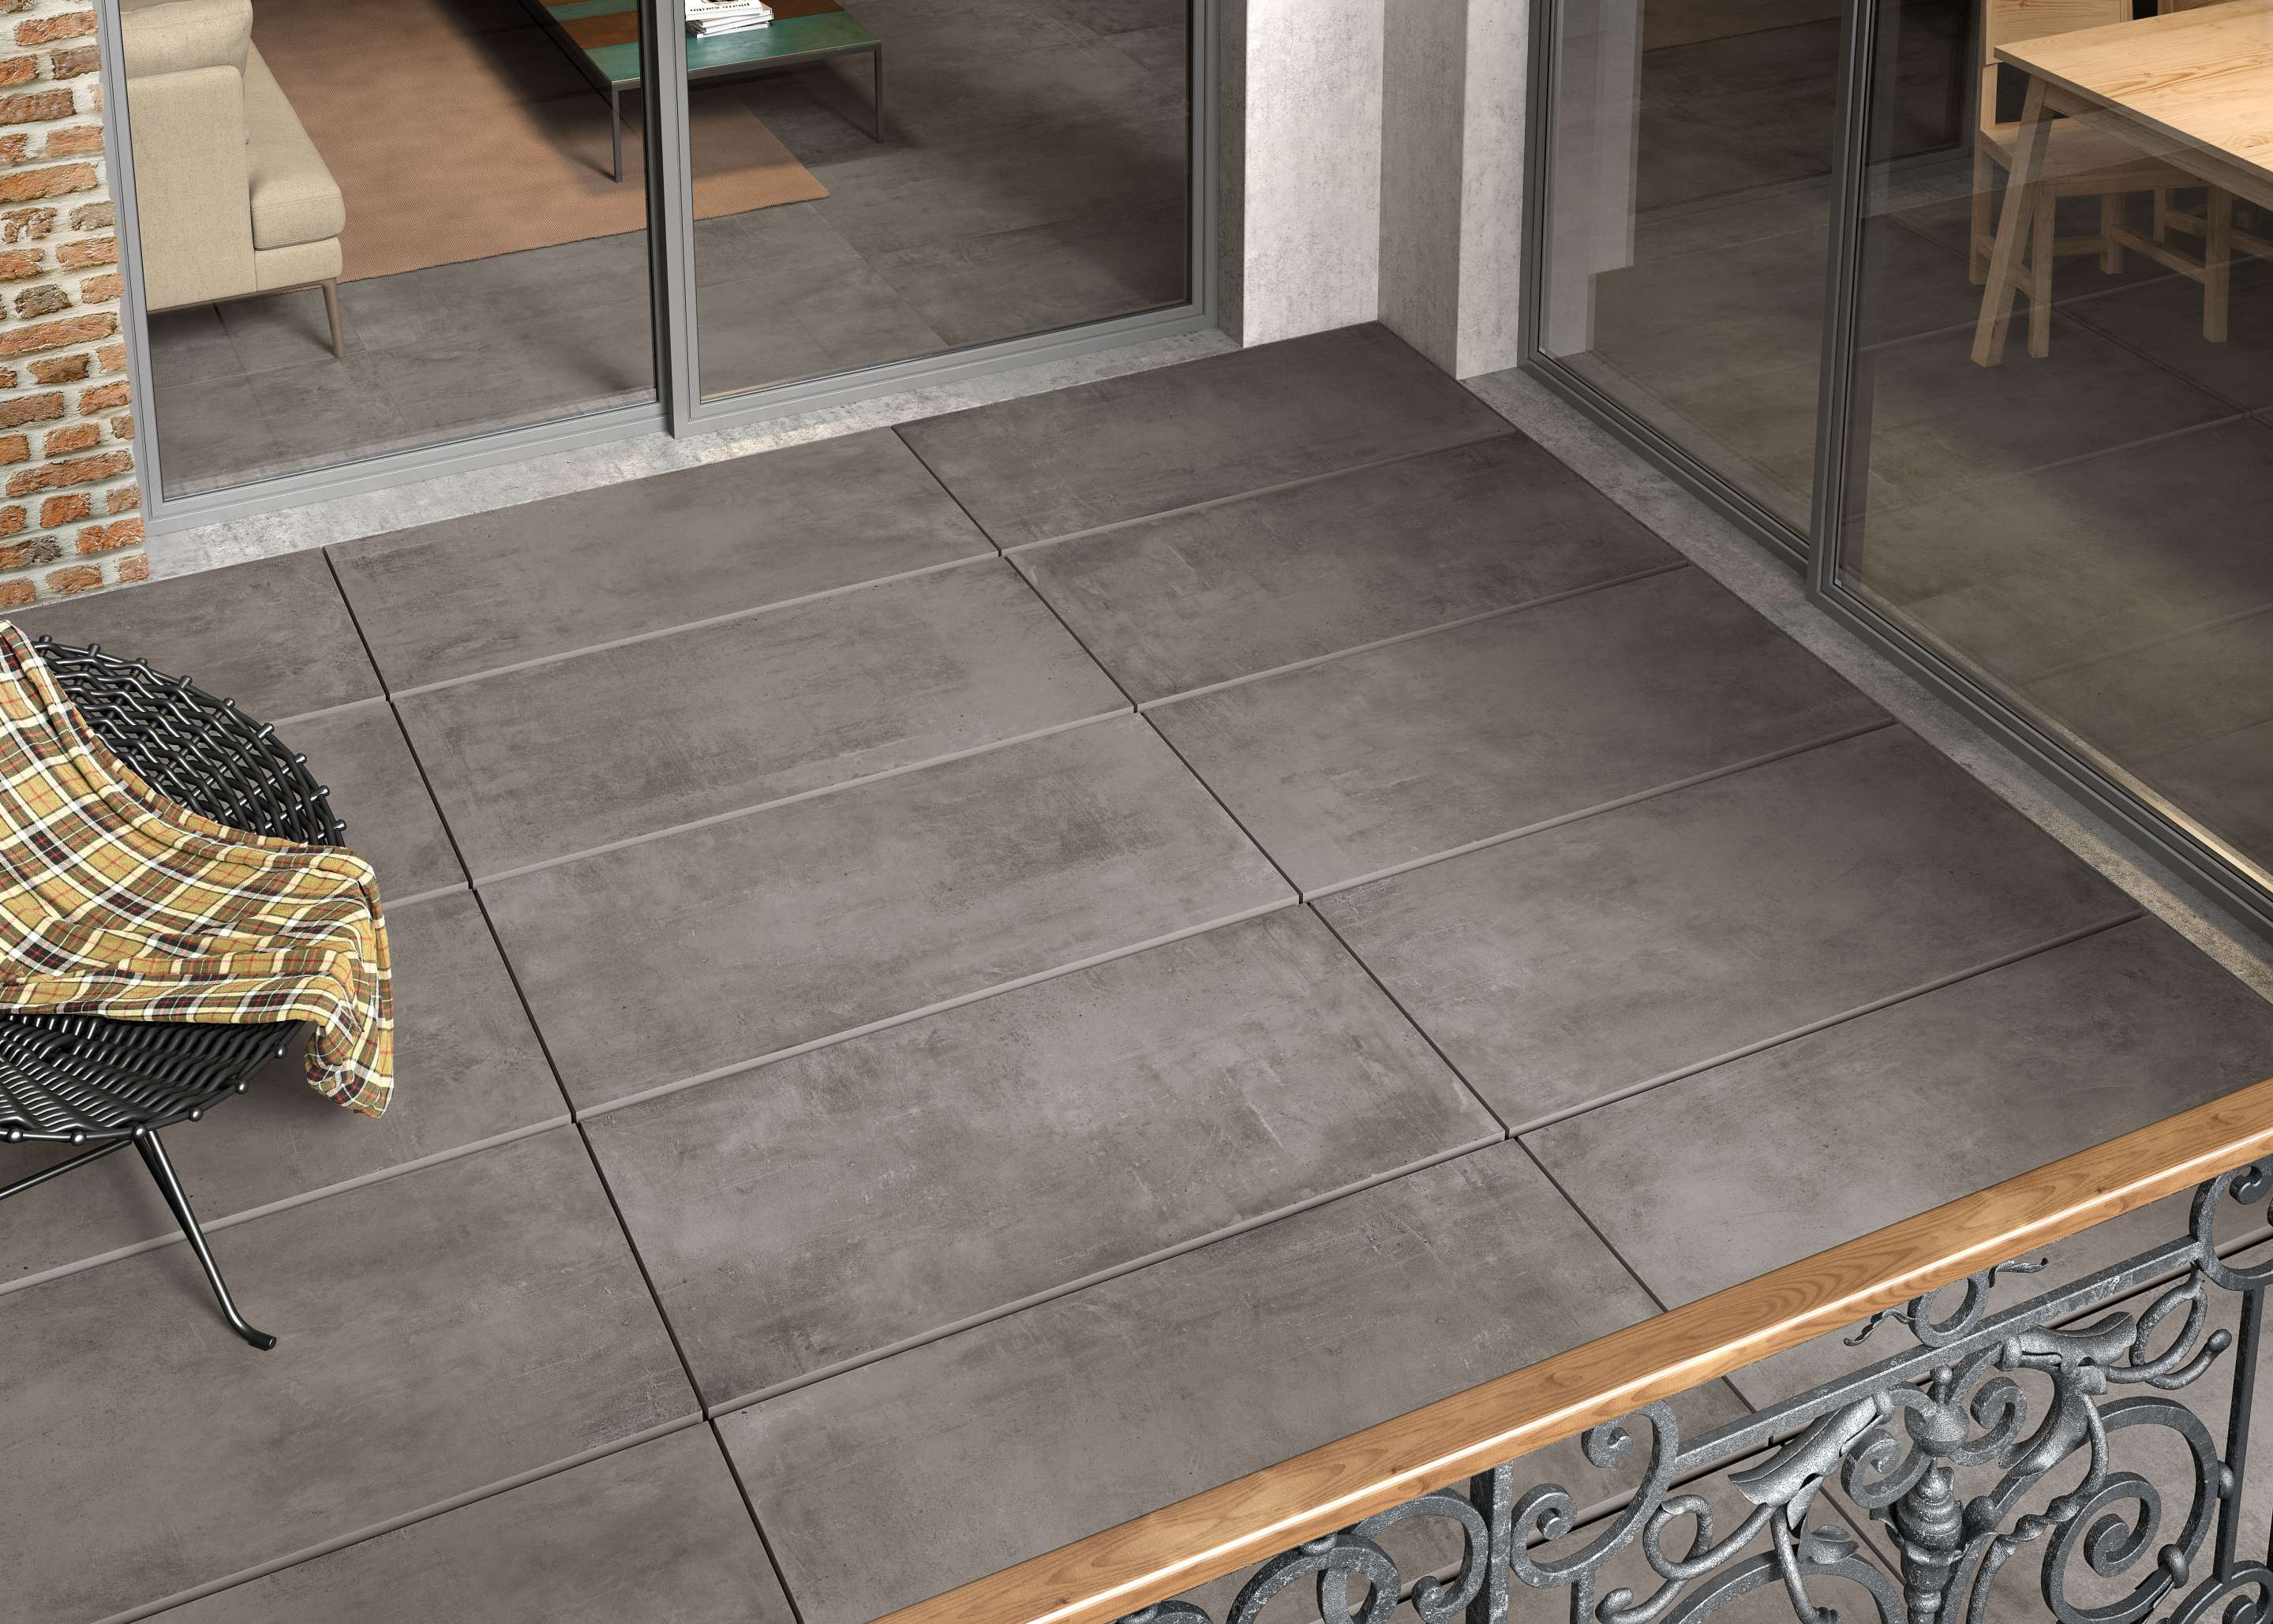 Dunkel Grau Betonfliesen auf der Balkon, dark grey concrete effect tiles on the balcony